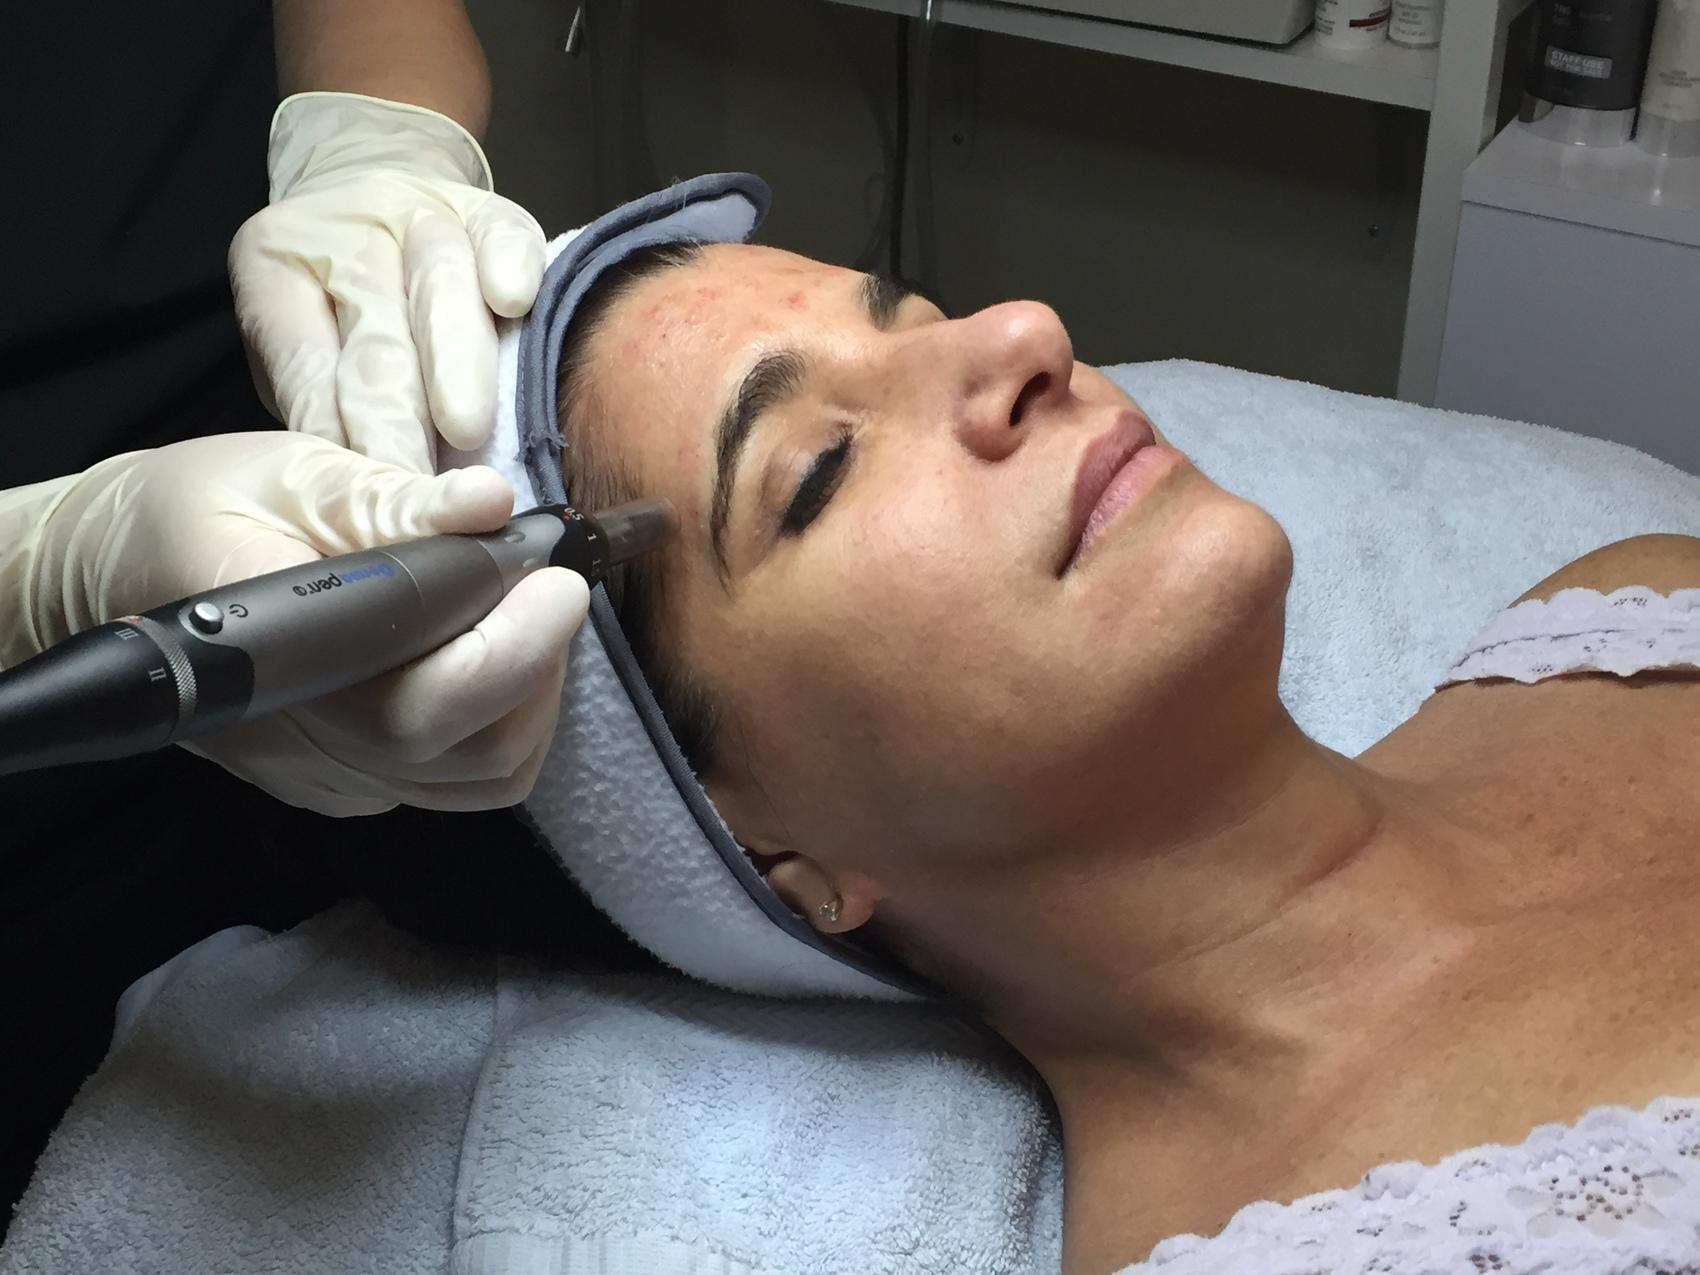 esthetician using pixel peel facial treatment on client's forehead